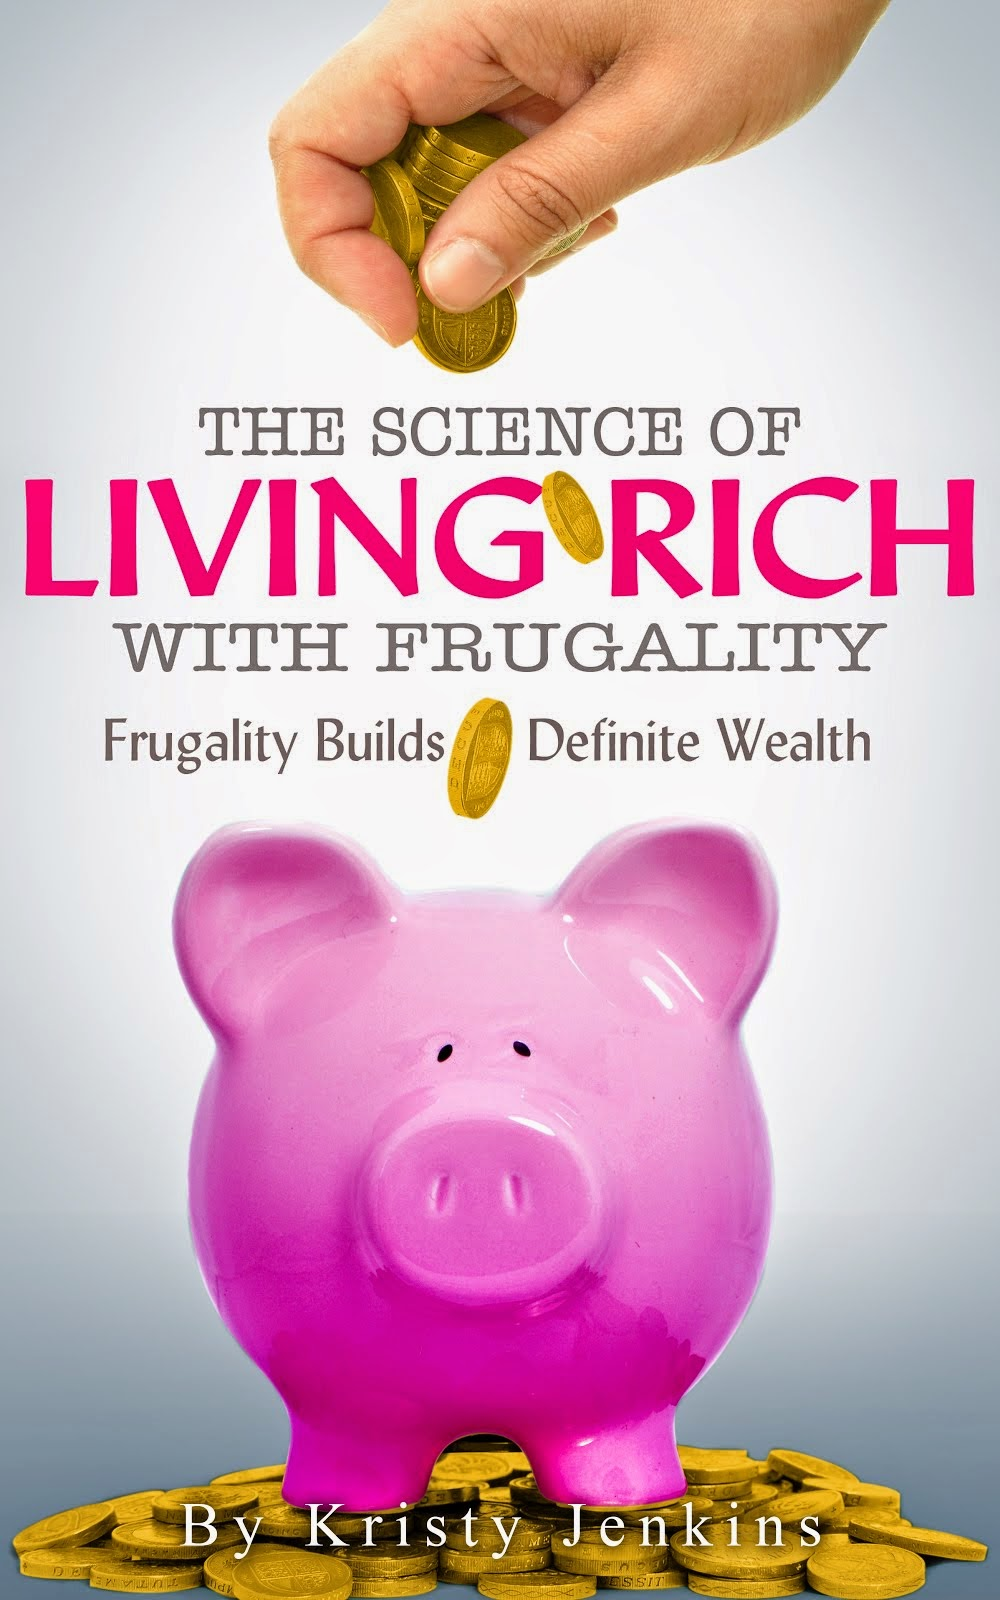 Science of Living Rich with Frugality